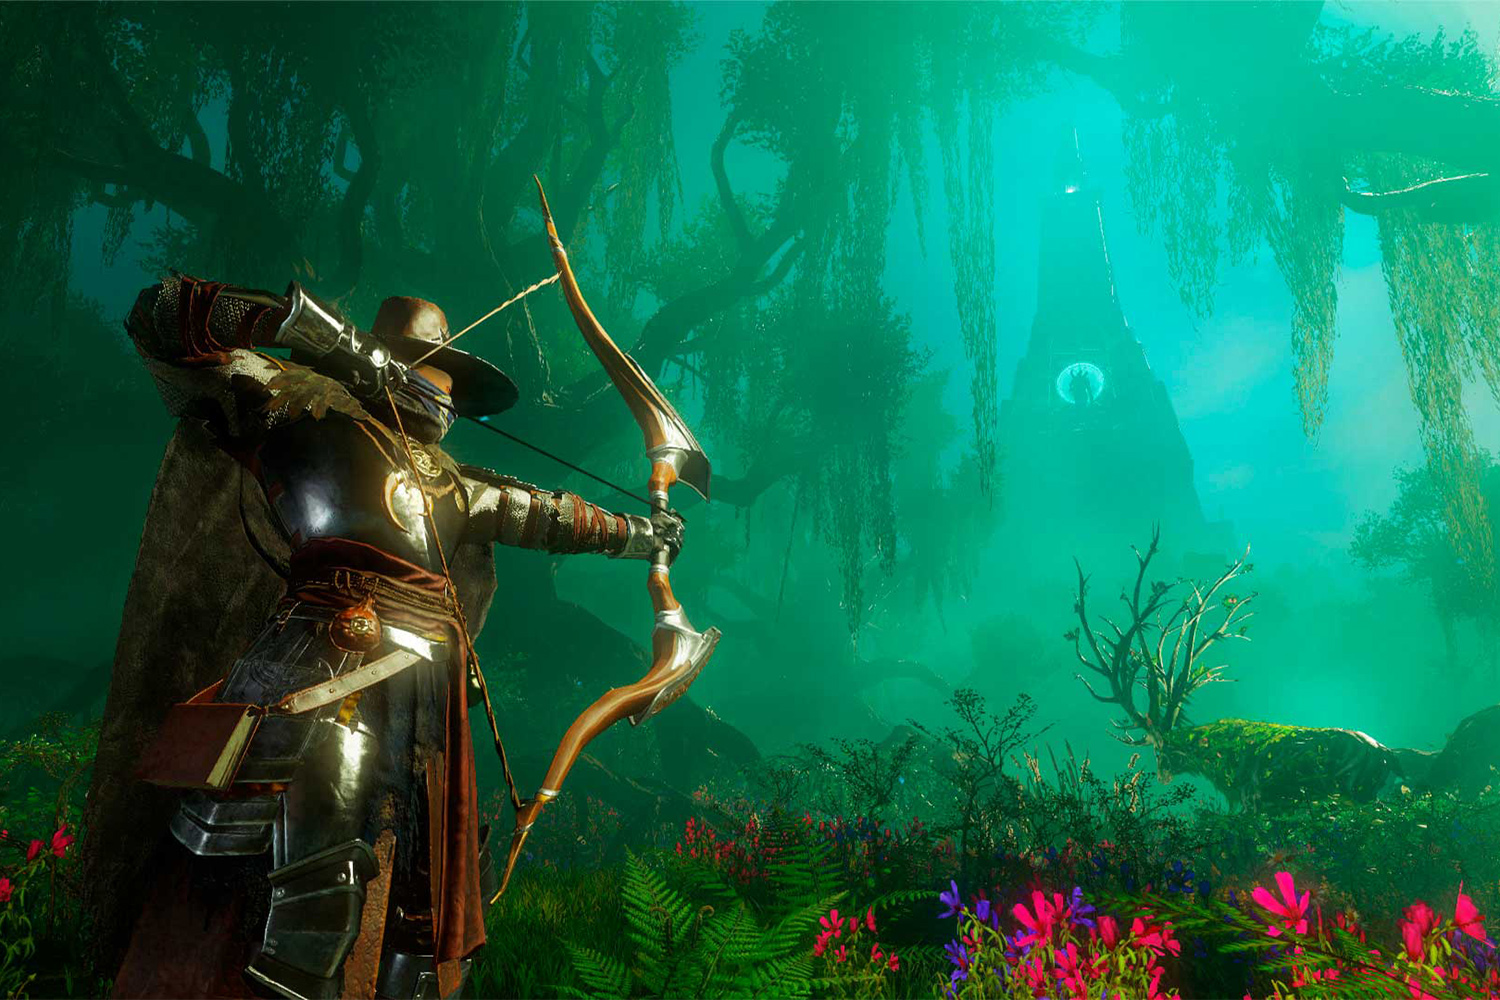 New World is a massively multiplayer online role-playing game